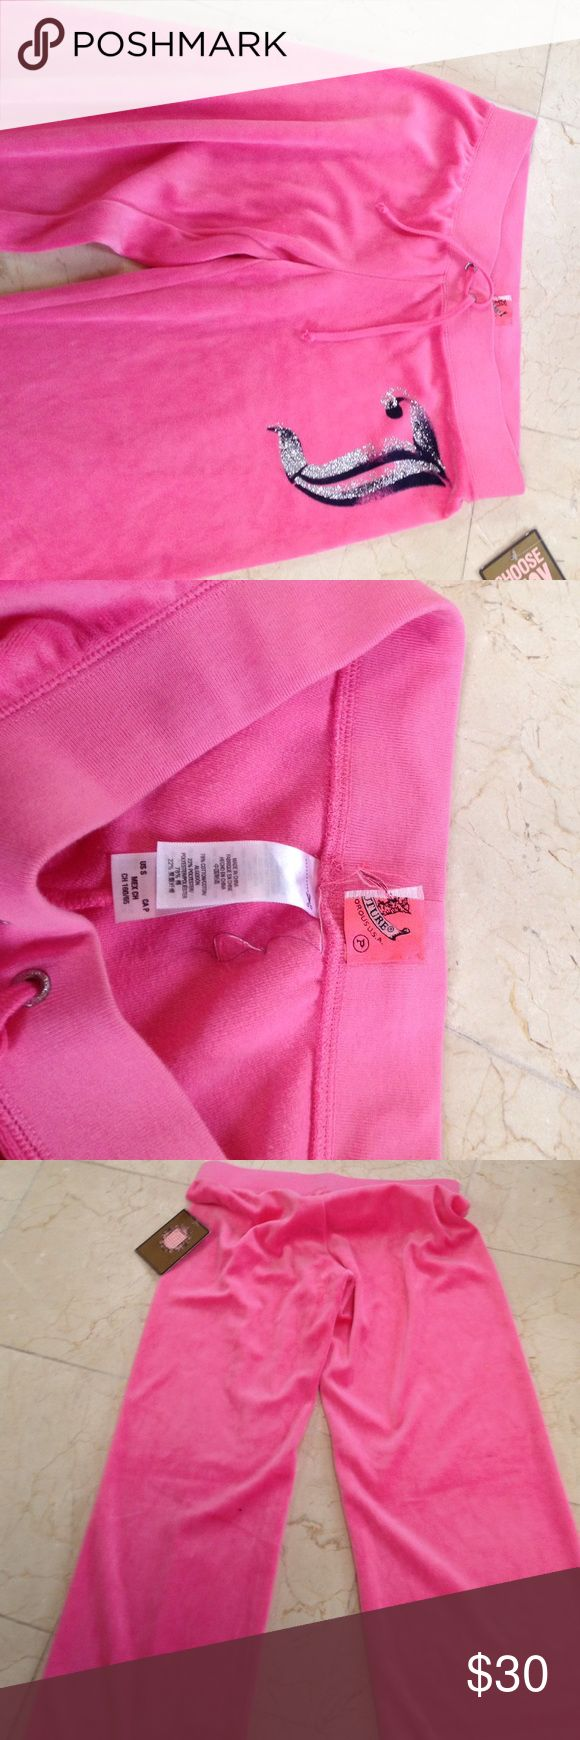 BNWT Juicy Couture pink pants and a sparkling 'J' Lovely BNWT Juicy J pants. This is a real Juicy pants size petite. This was purchased from TJ Max, so you know it's real and that's why the inner tag is cut. Let me kno if you have any questions let me kno. Offers and trades accepts! Thankx for taking a peek in my closet!💋💋💋 Juicy Couture Pants Track Pants & Joggers